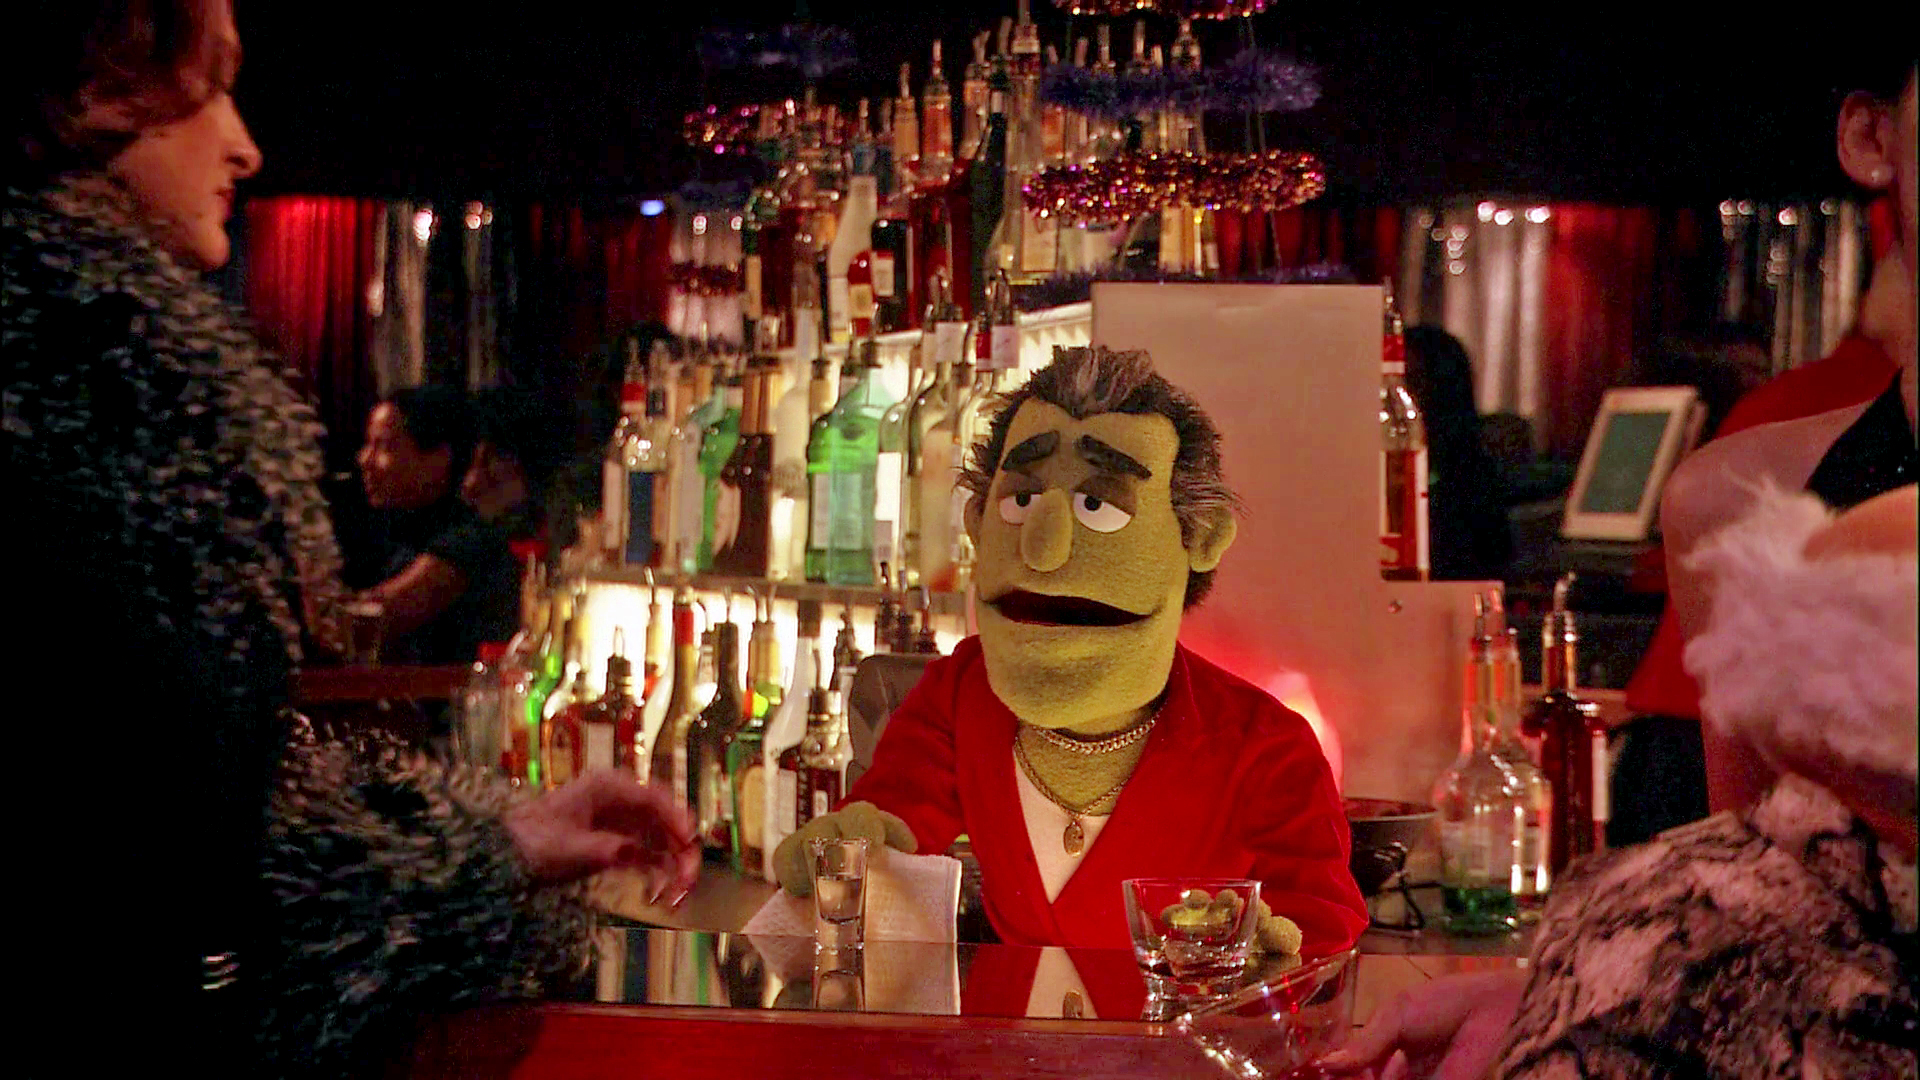 Image result for muppets in a bar